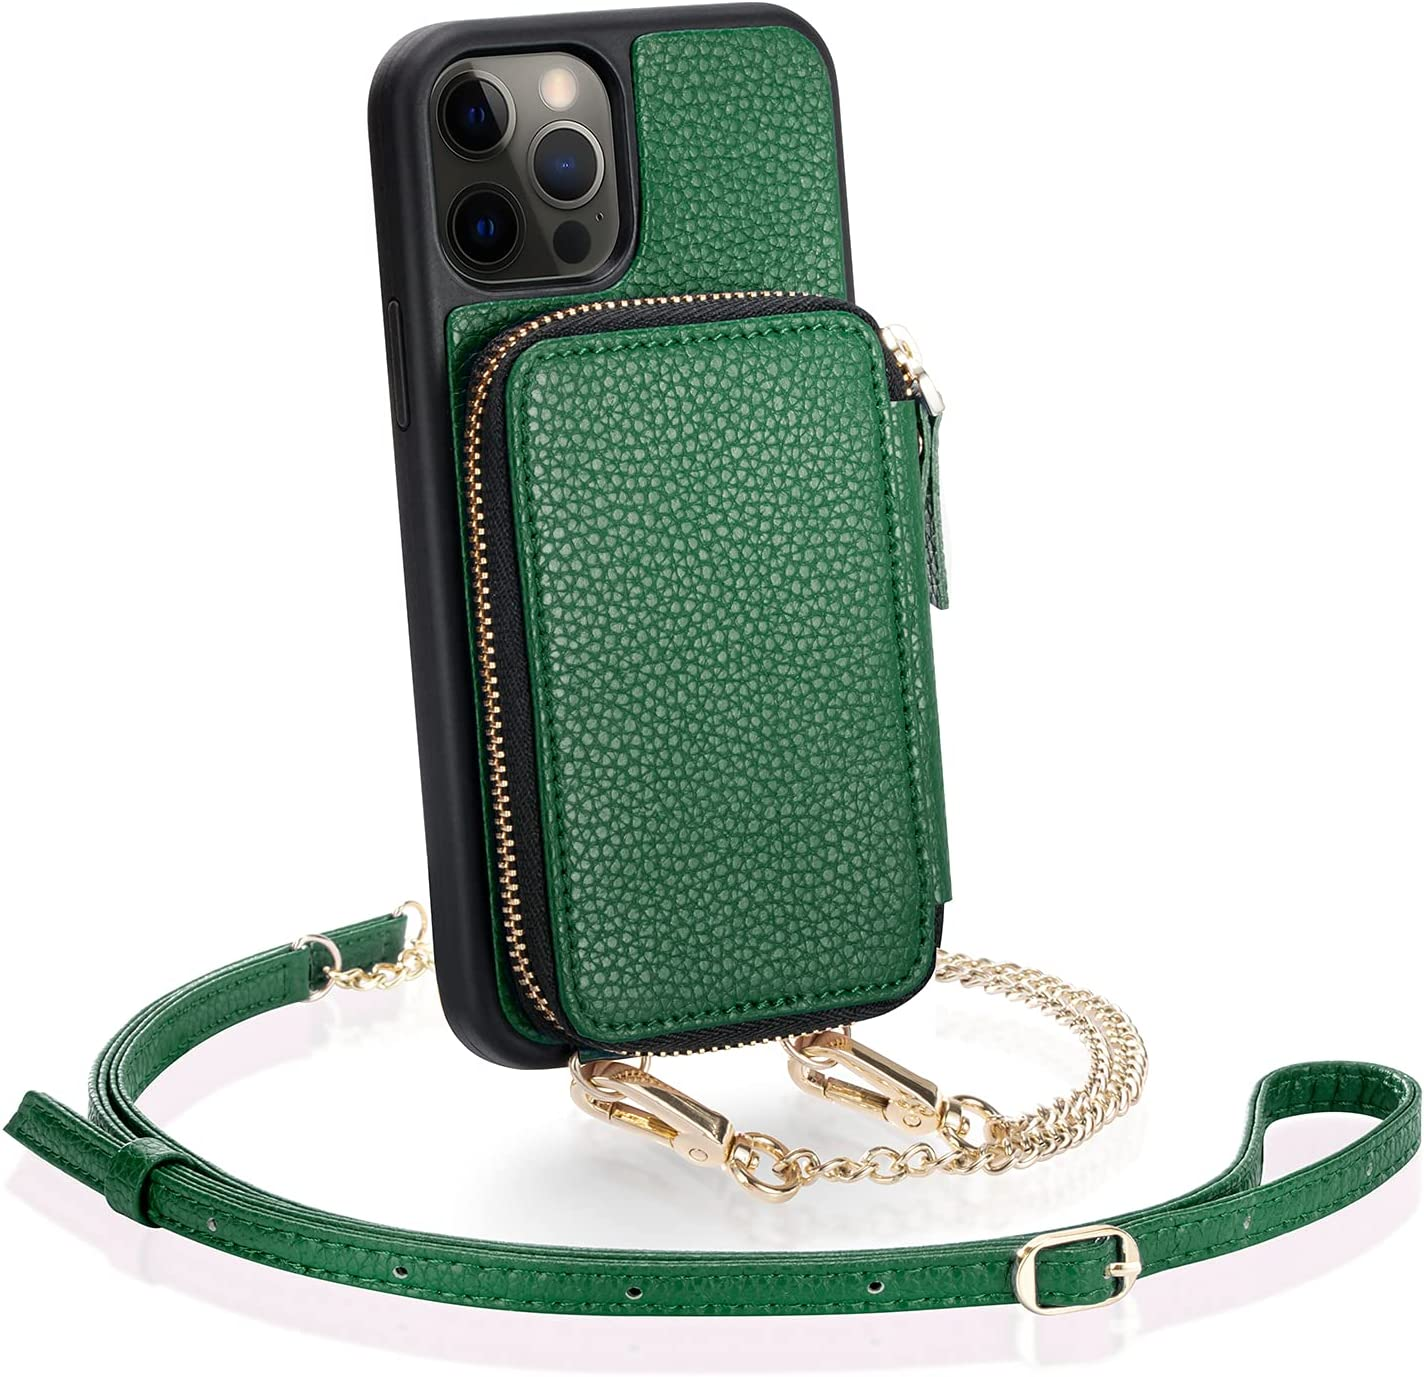 ZVE Crossbody Wallet Case for iPhone 12 Pro/12 (6.1 inch) with Card Holder, Zipper Phone Case Purse with Wrist Strap Cover Gift for Women Girl Compatible with iPhone 12 Pro/12, 6.1 inch-Dark Green